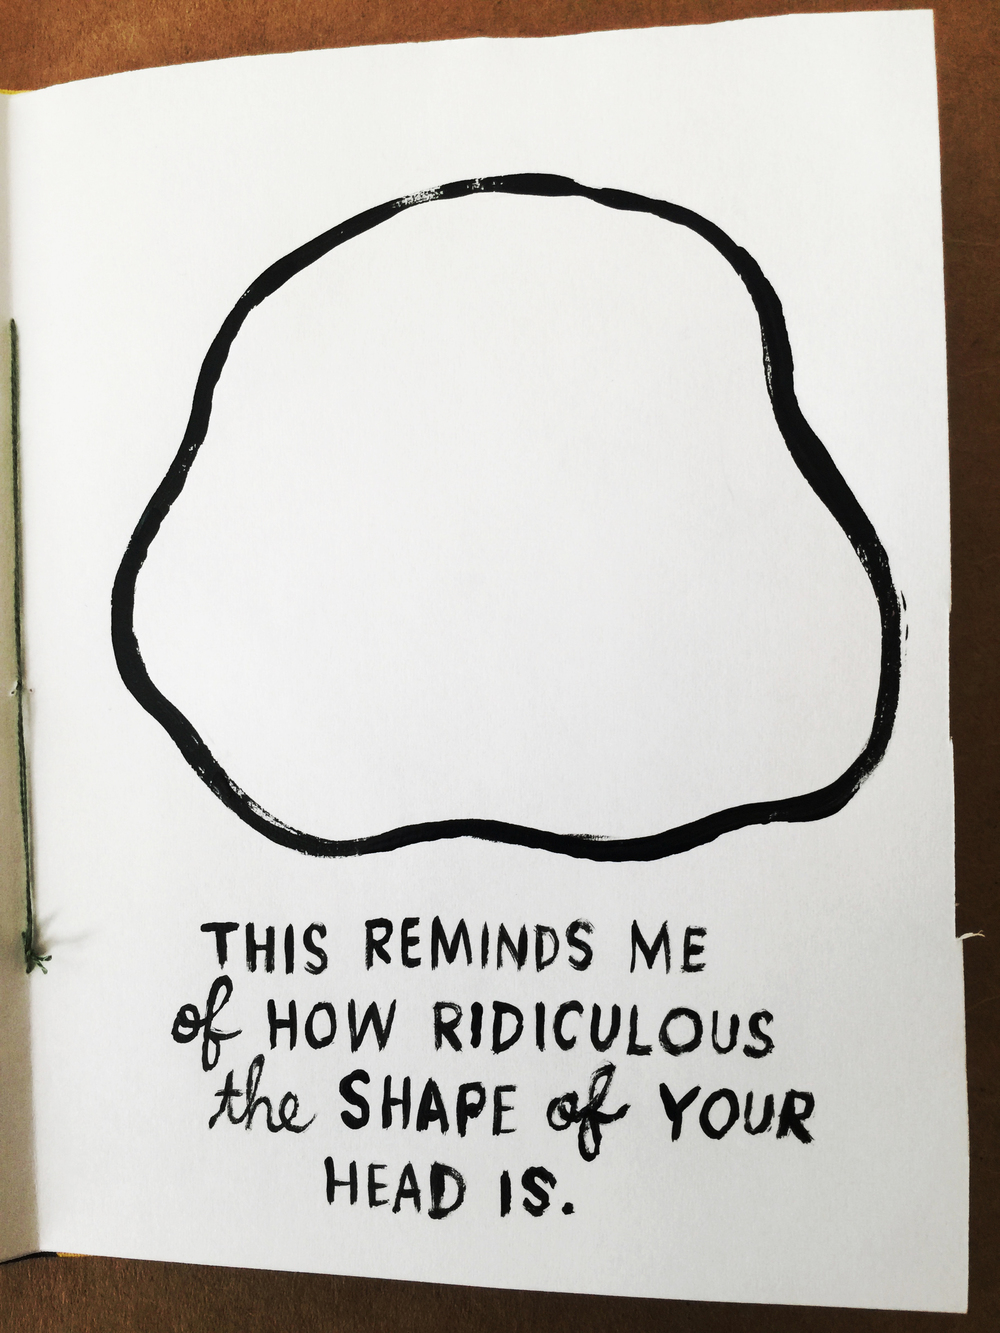 11 SHAPES THAT REMIND ME OF YOU AND I HATE YOU